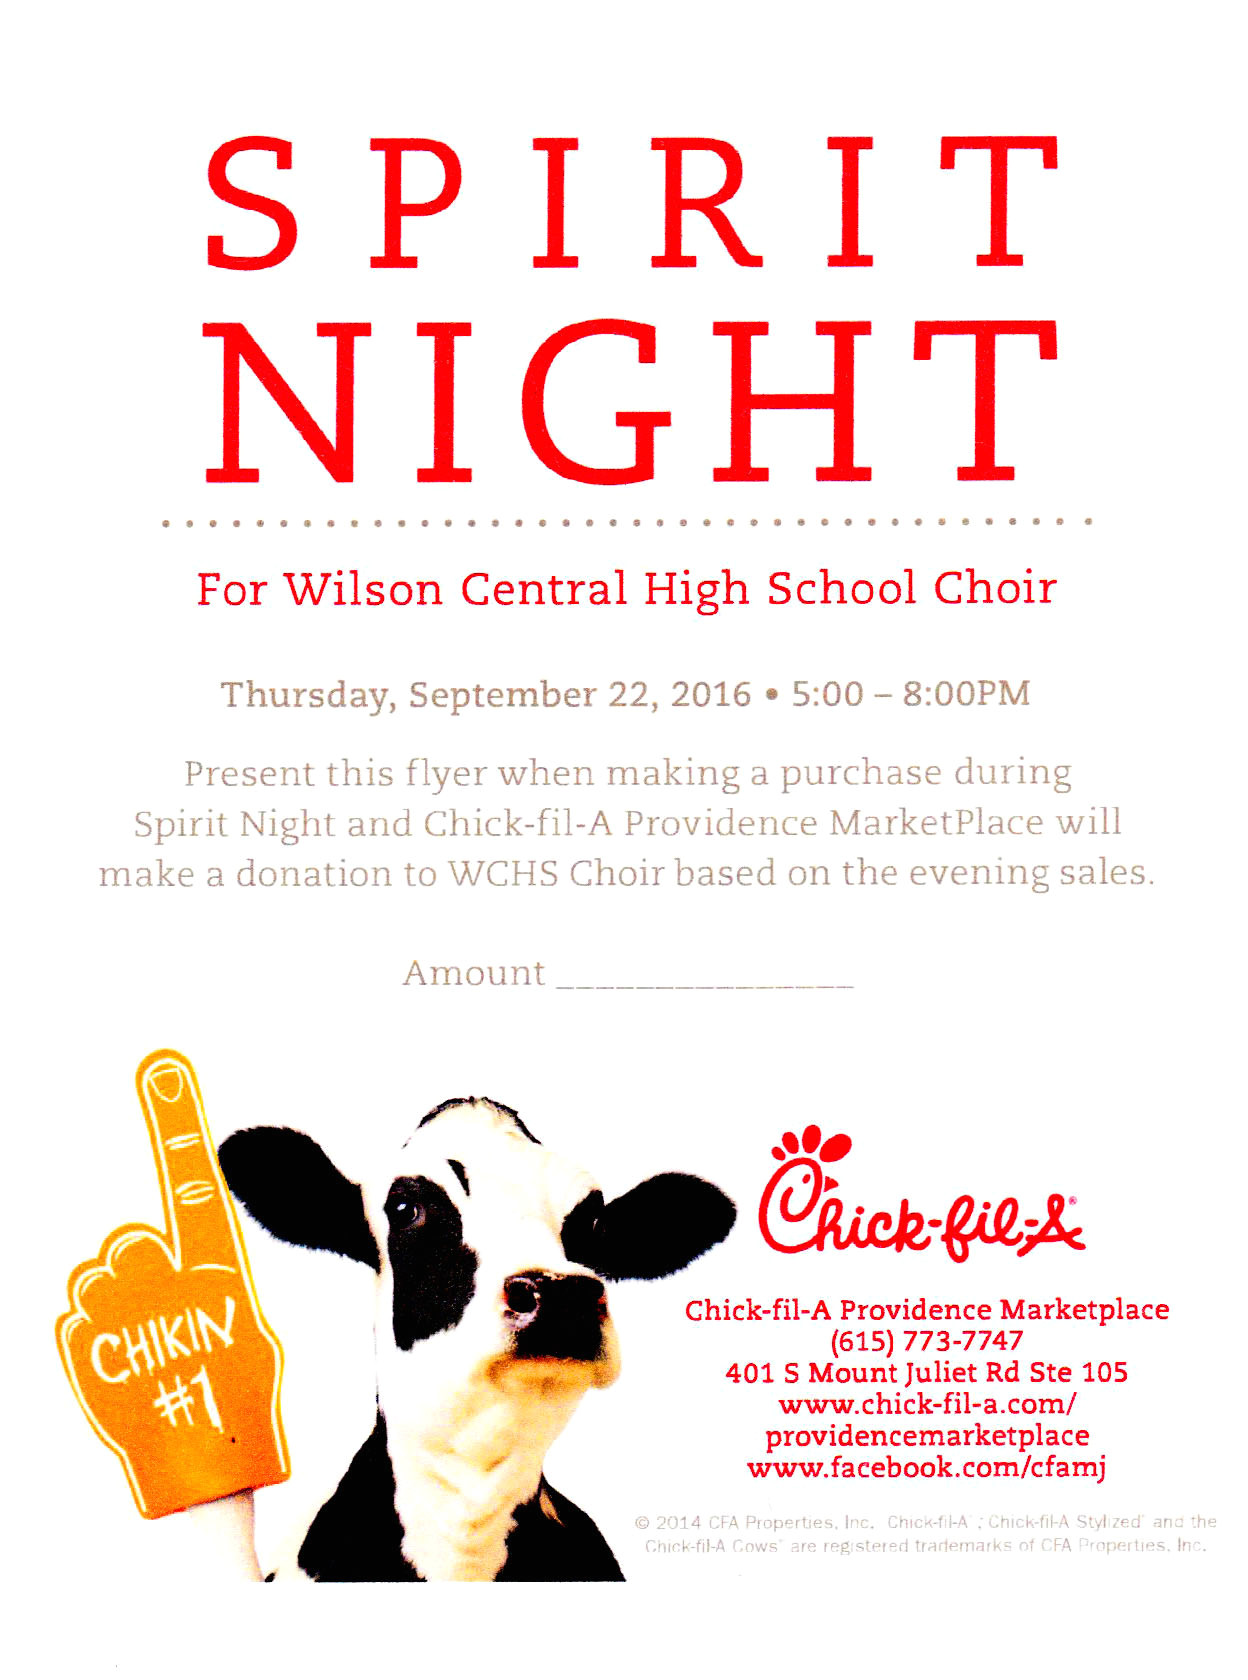 chick fil a spirit night flyer and yankee candle online fundraiser info